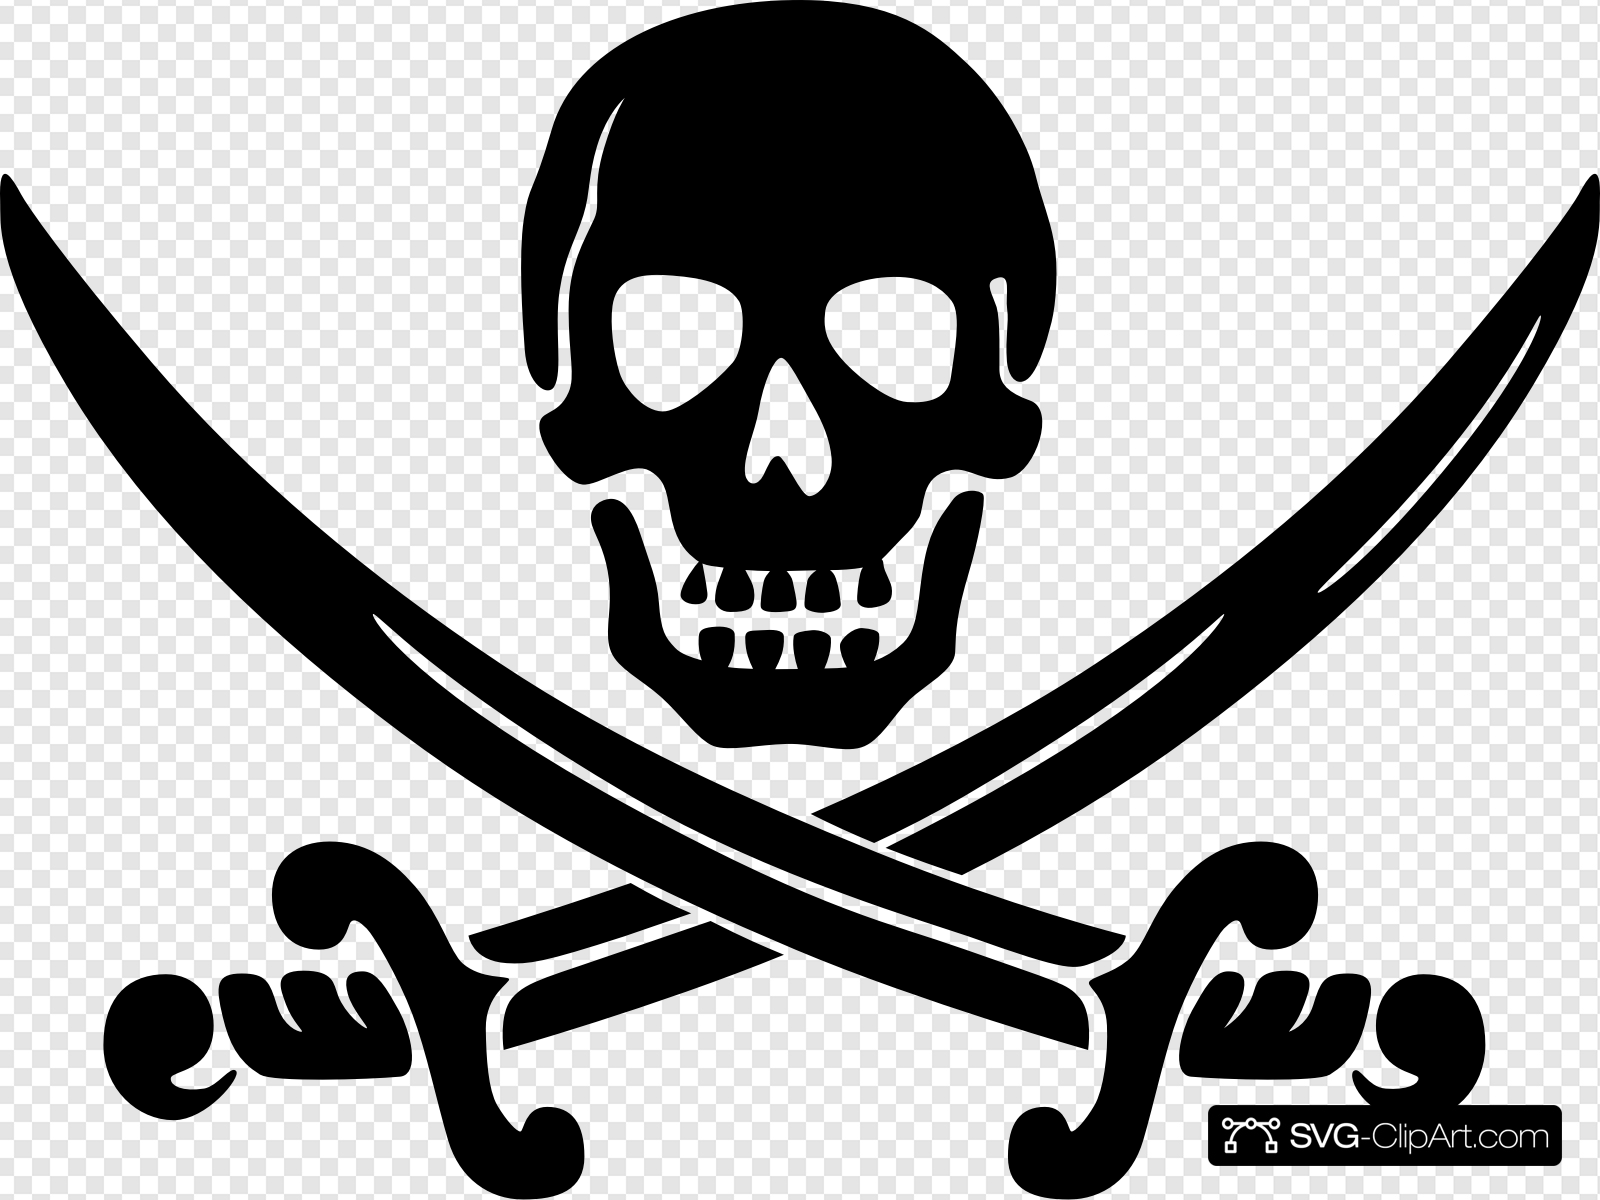 Clue Calico Jack Pirate Logo Clip art, Icon and SVG.